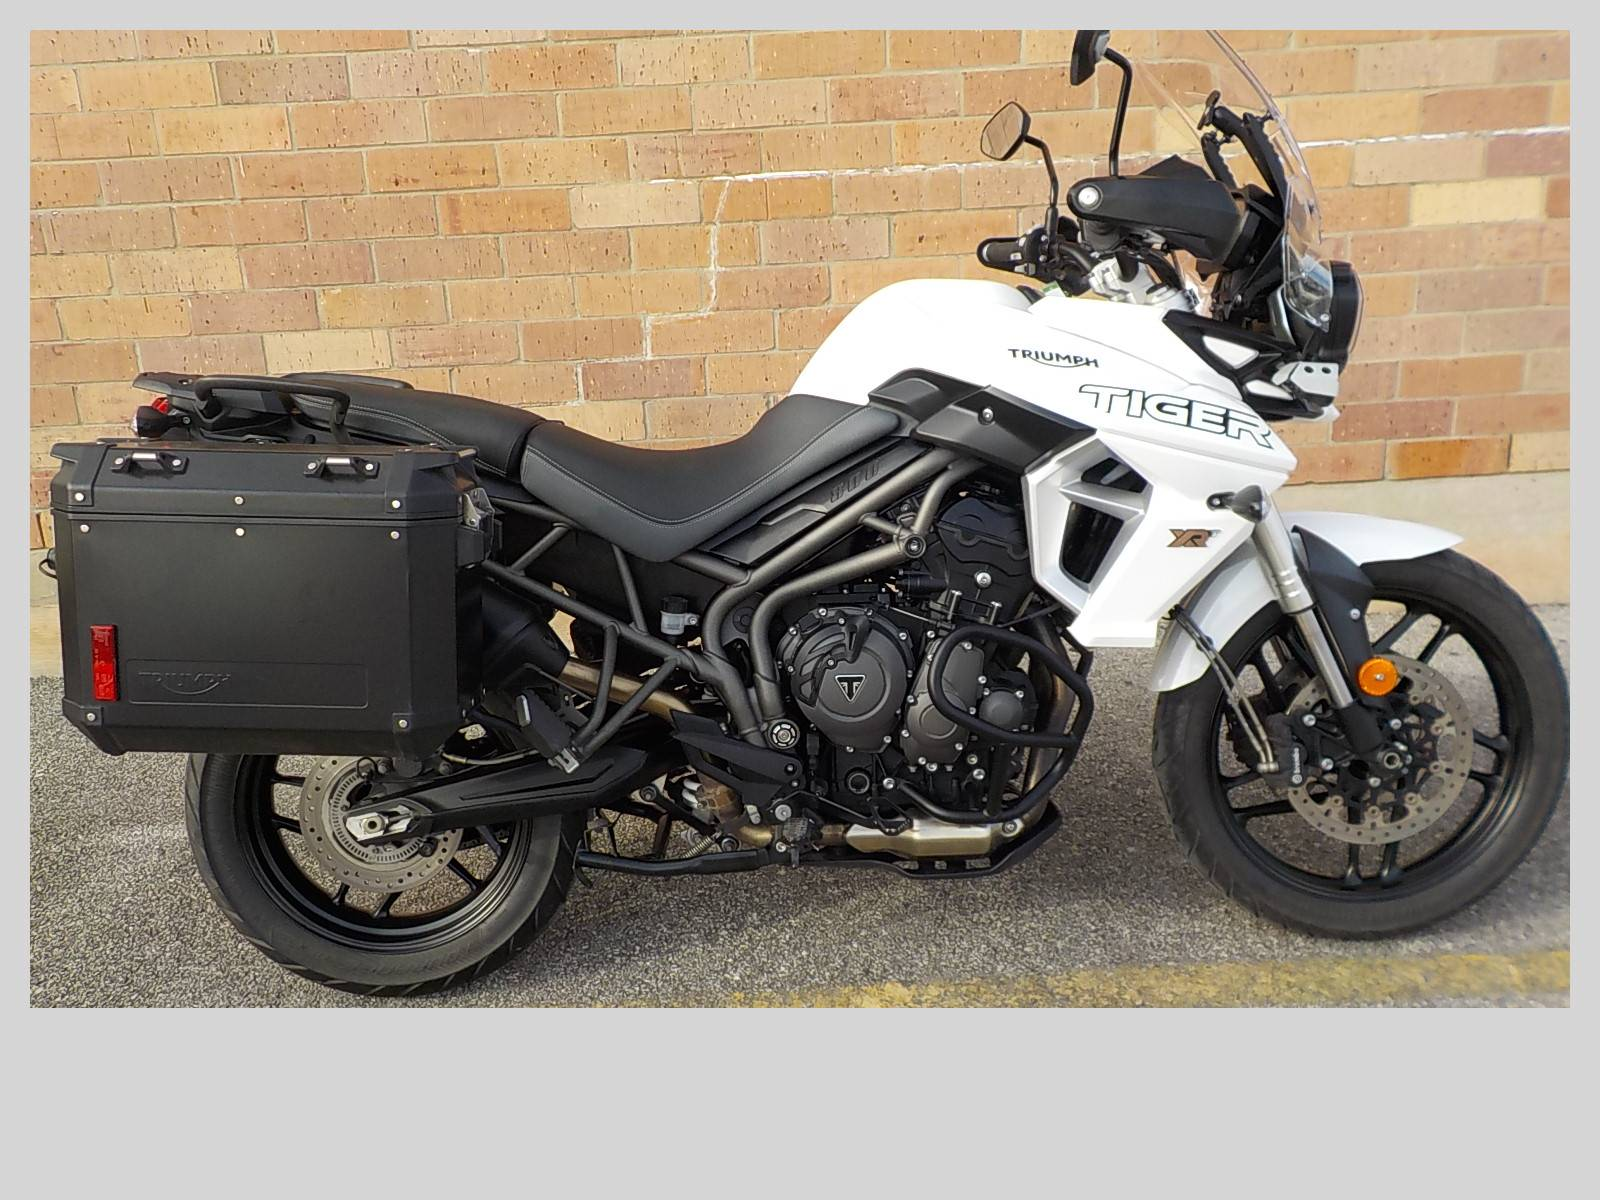 2019 Triumph Tiger 800 XRt in San Antonio, Texas - Photo 1